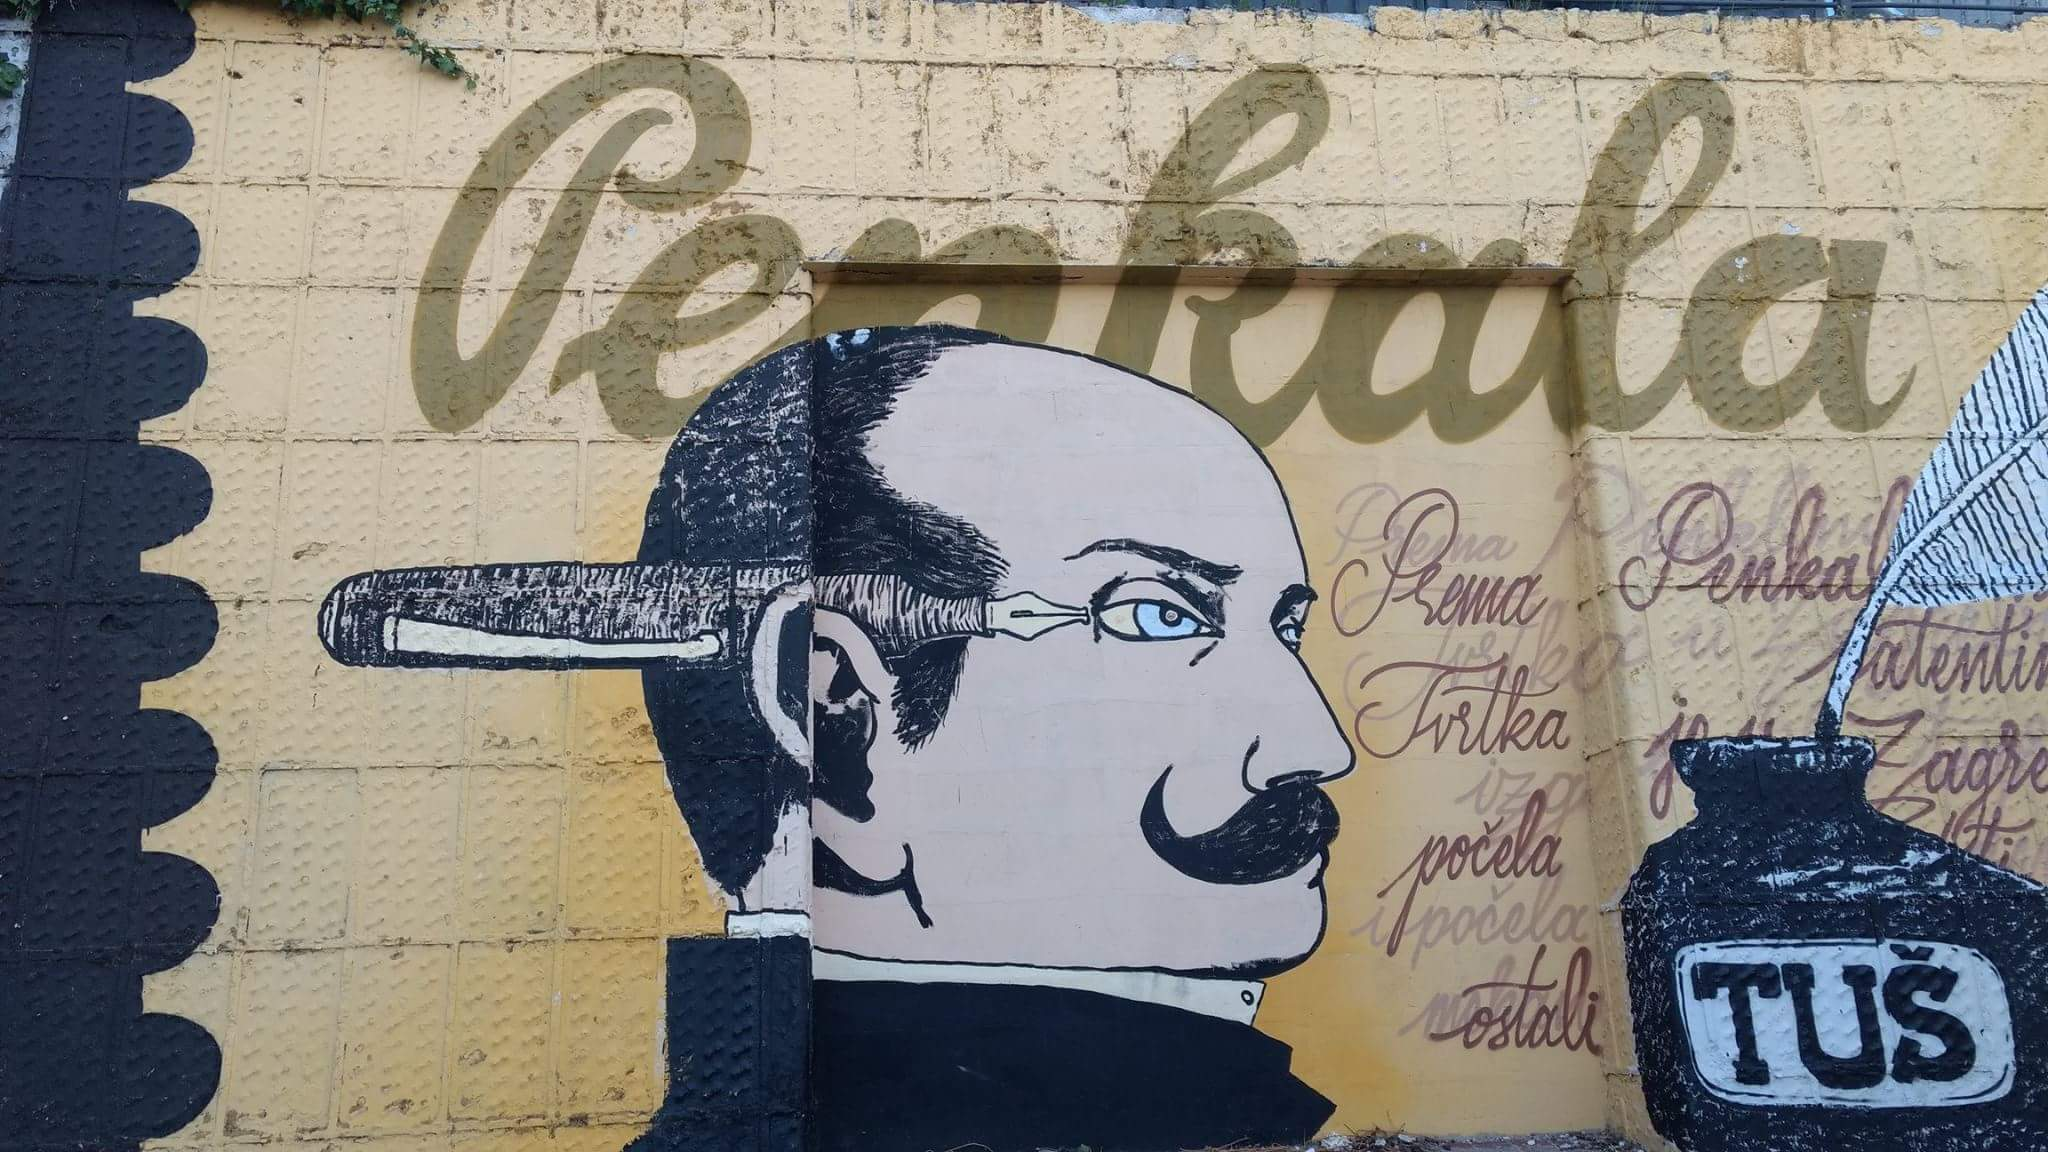 Zagreb street art celebrates the lesser known genius called Nikola Tesla